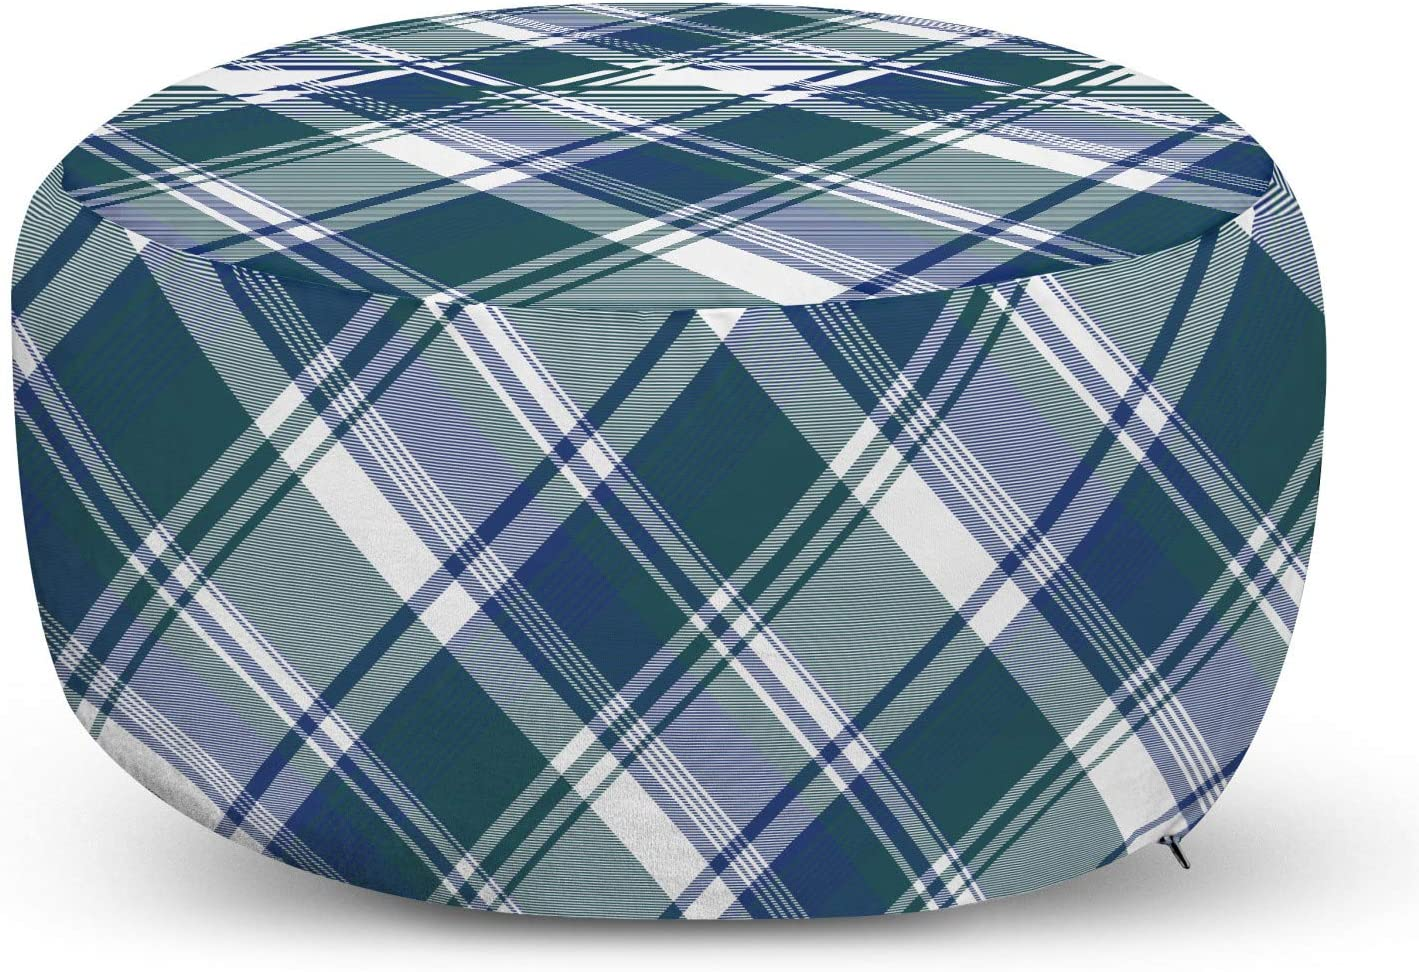 Amazon Com Lunarable Navy Plaid Ottoman Pouf Overlapped Diagonal Lines Checkered Fashion Illustration Decorative Soft Foot Rest With Removable Cover Living Room And Bedroom Dark Teal Dark Lavender Kitchen Dining